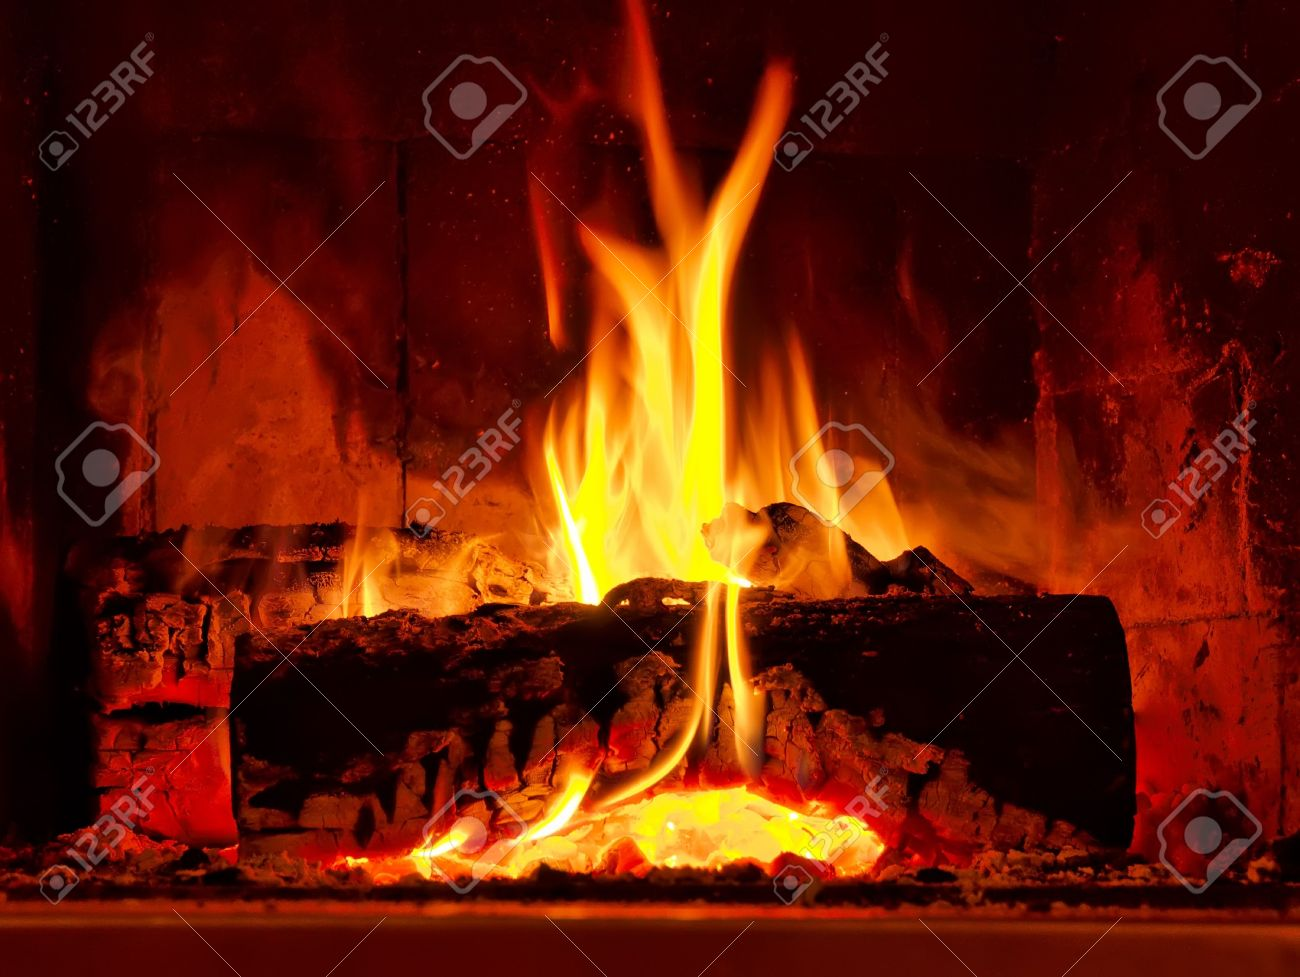 Fire Burning In Fireplace Stock Photo Picture And Royalty Free